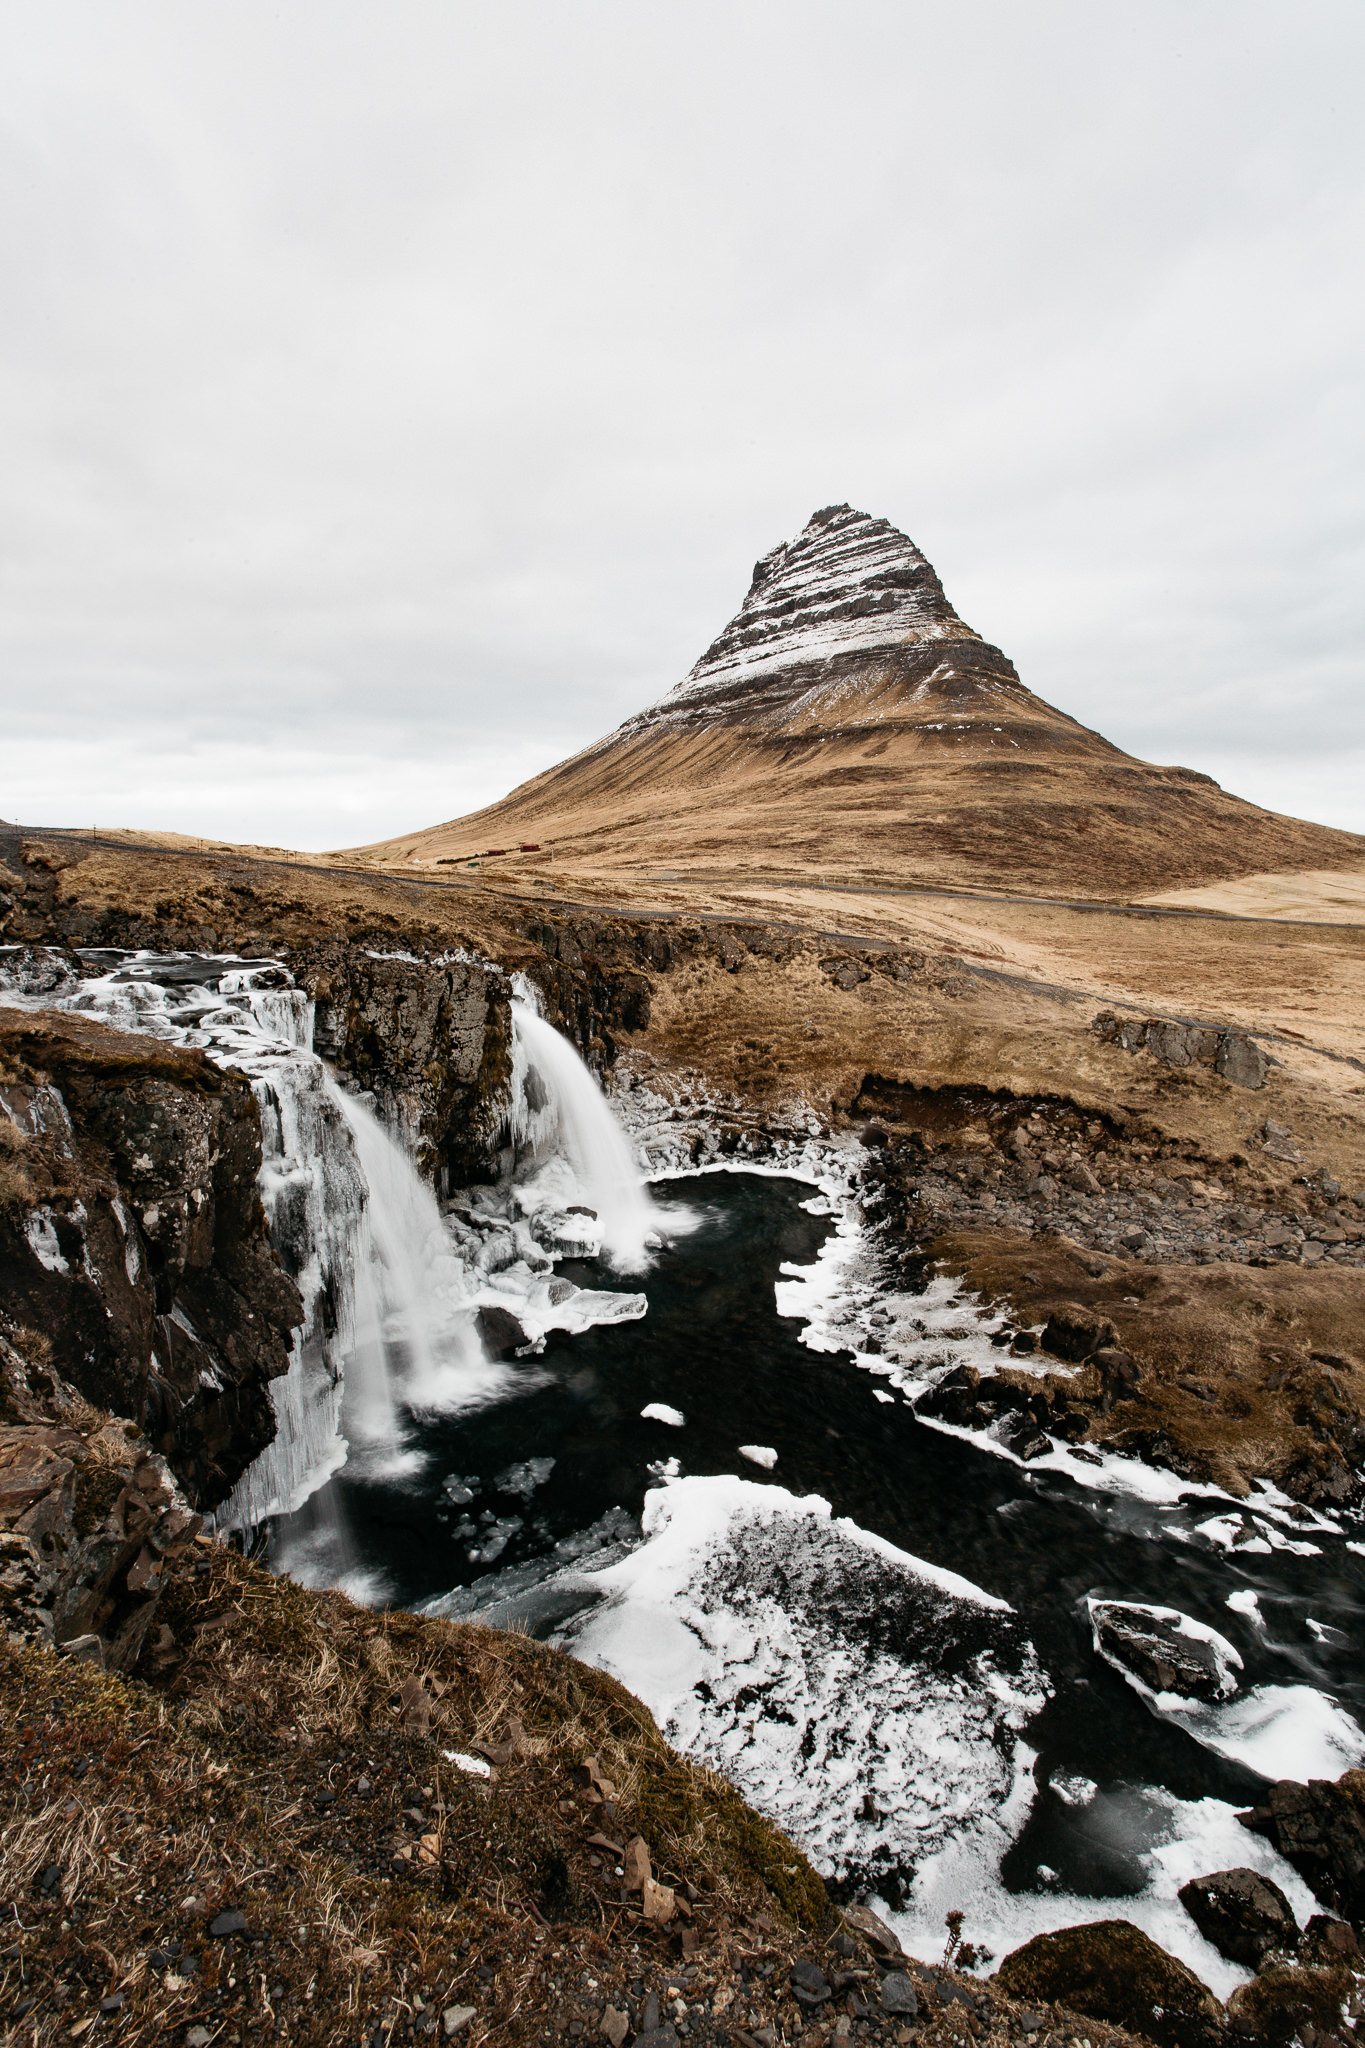 Kirkjufell mountain with two waterfalls in the foreground